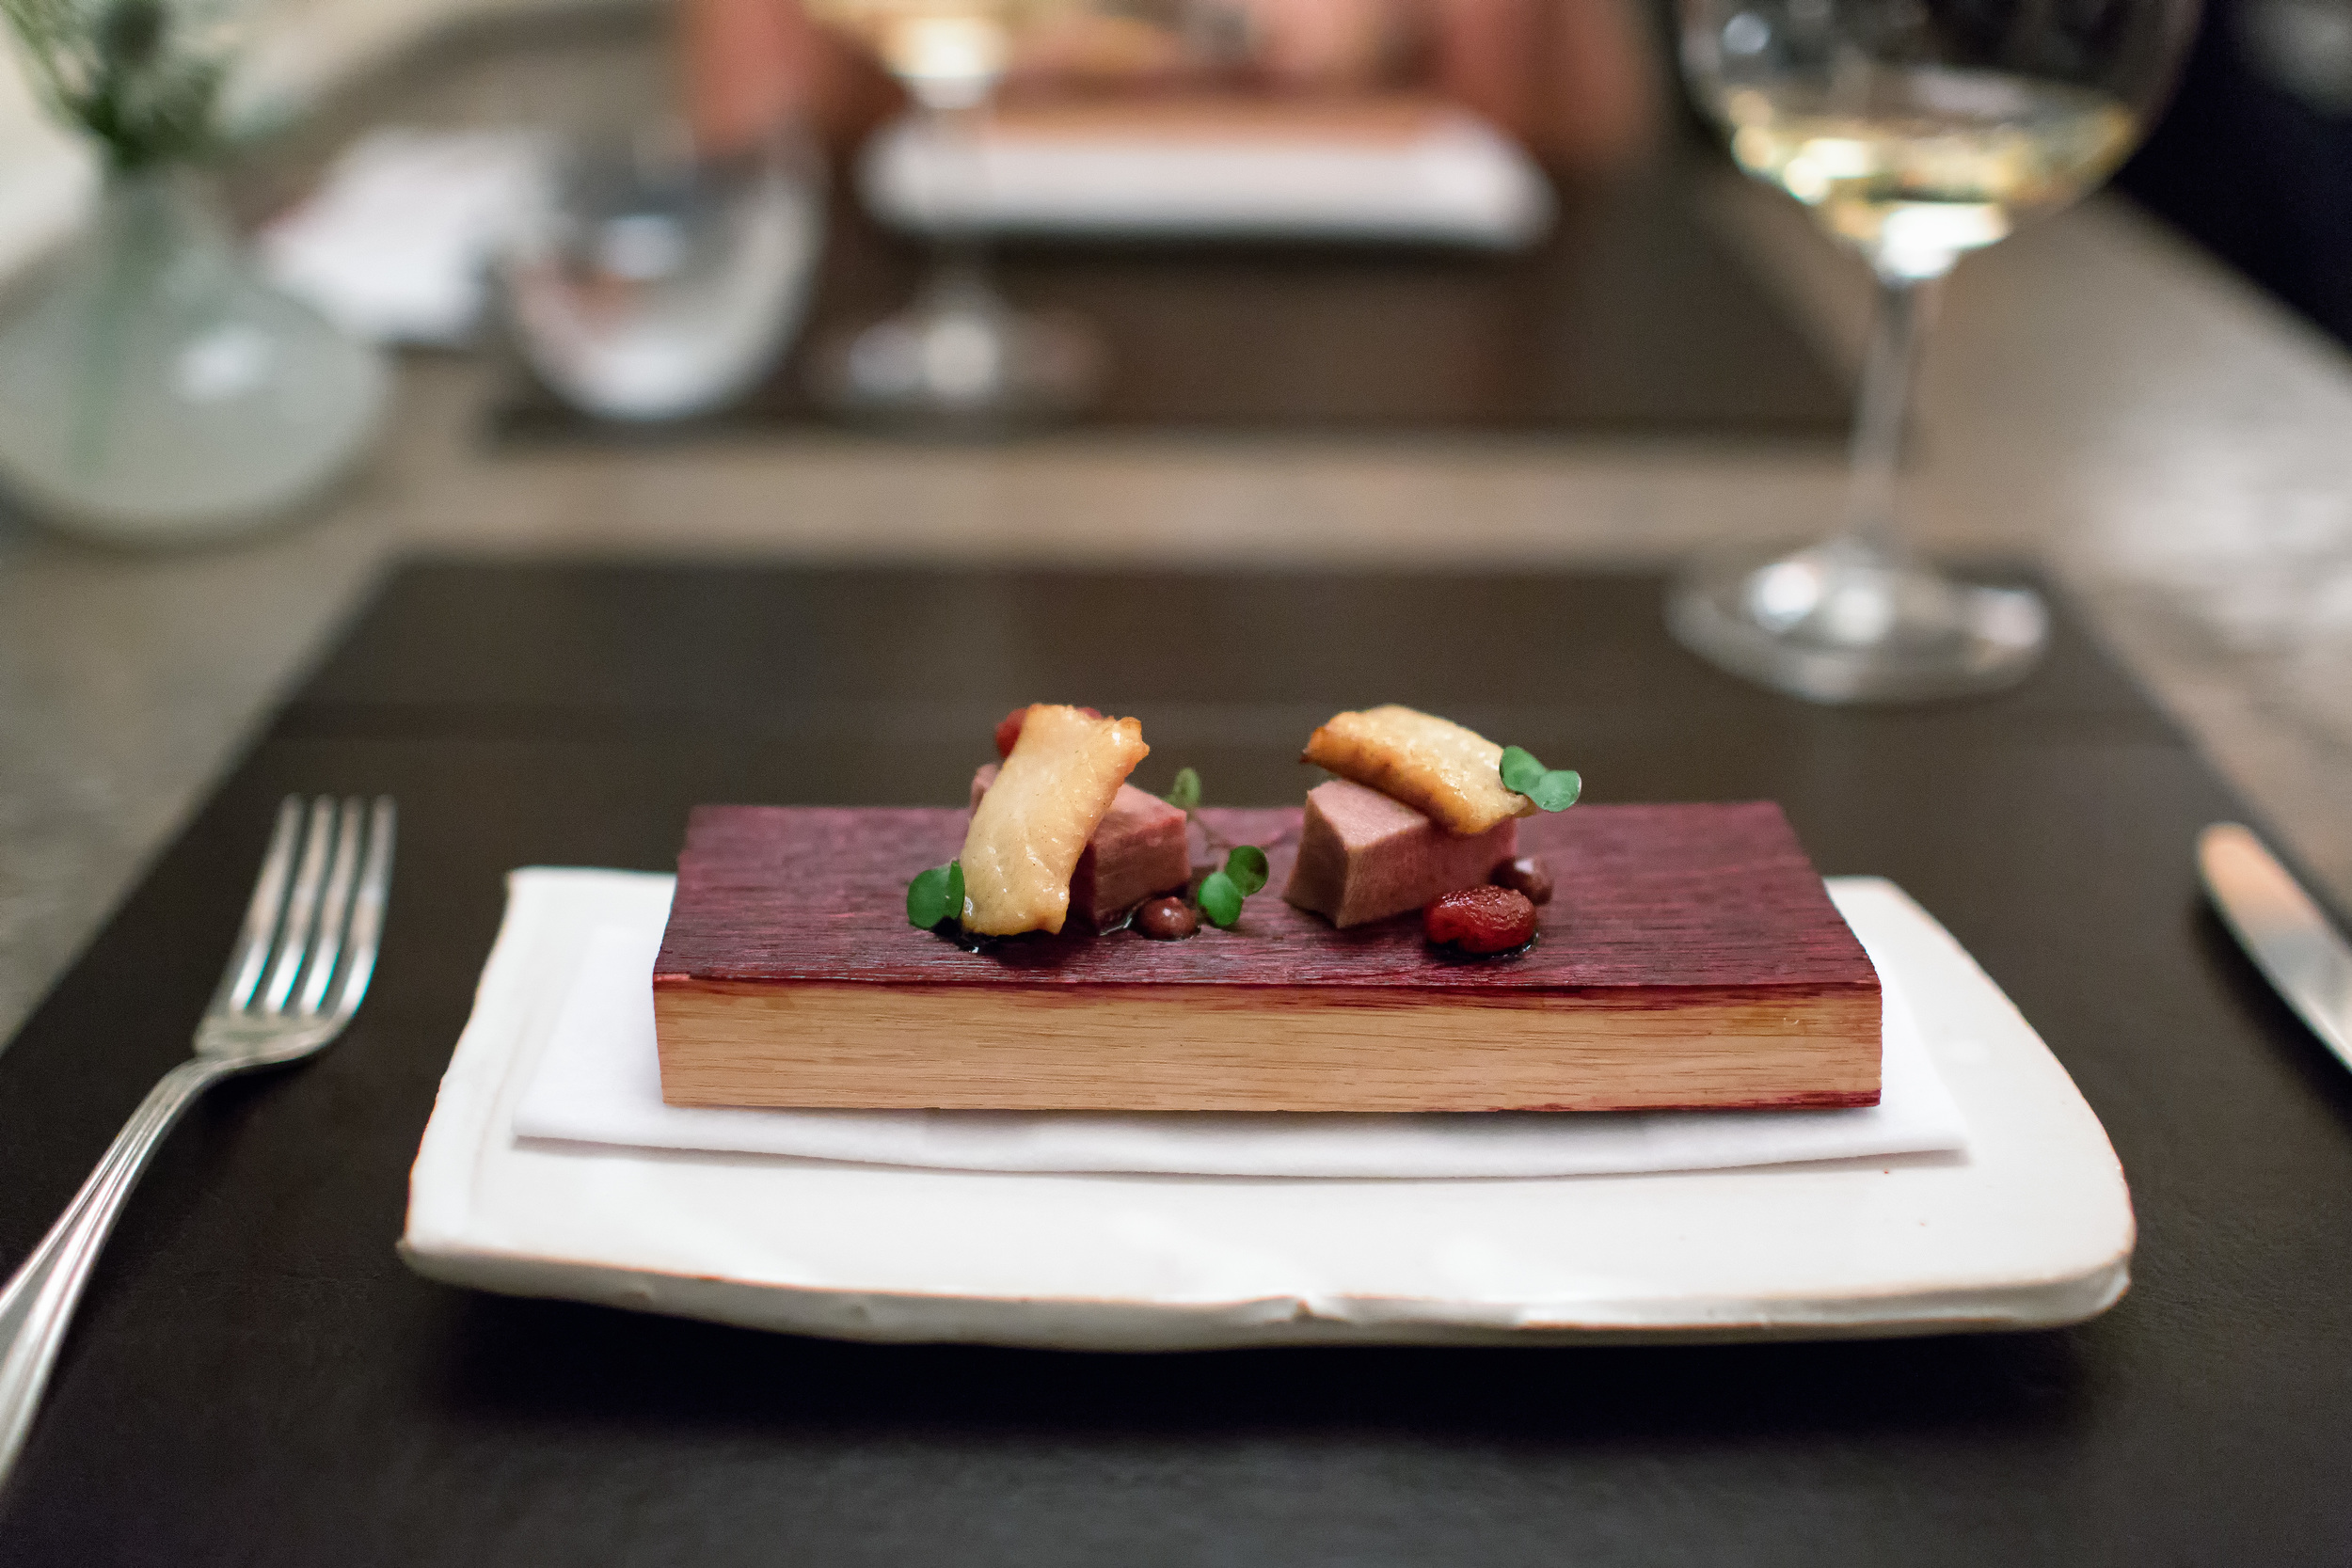 Eel Smoked Over Cabernet Barrel @ The Restaurant at Meadowood (Napa Valley, California).